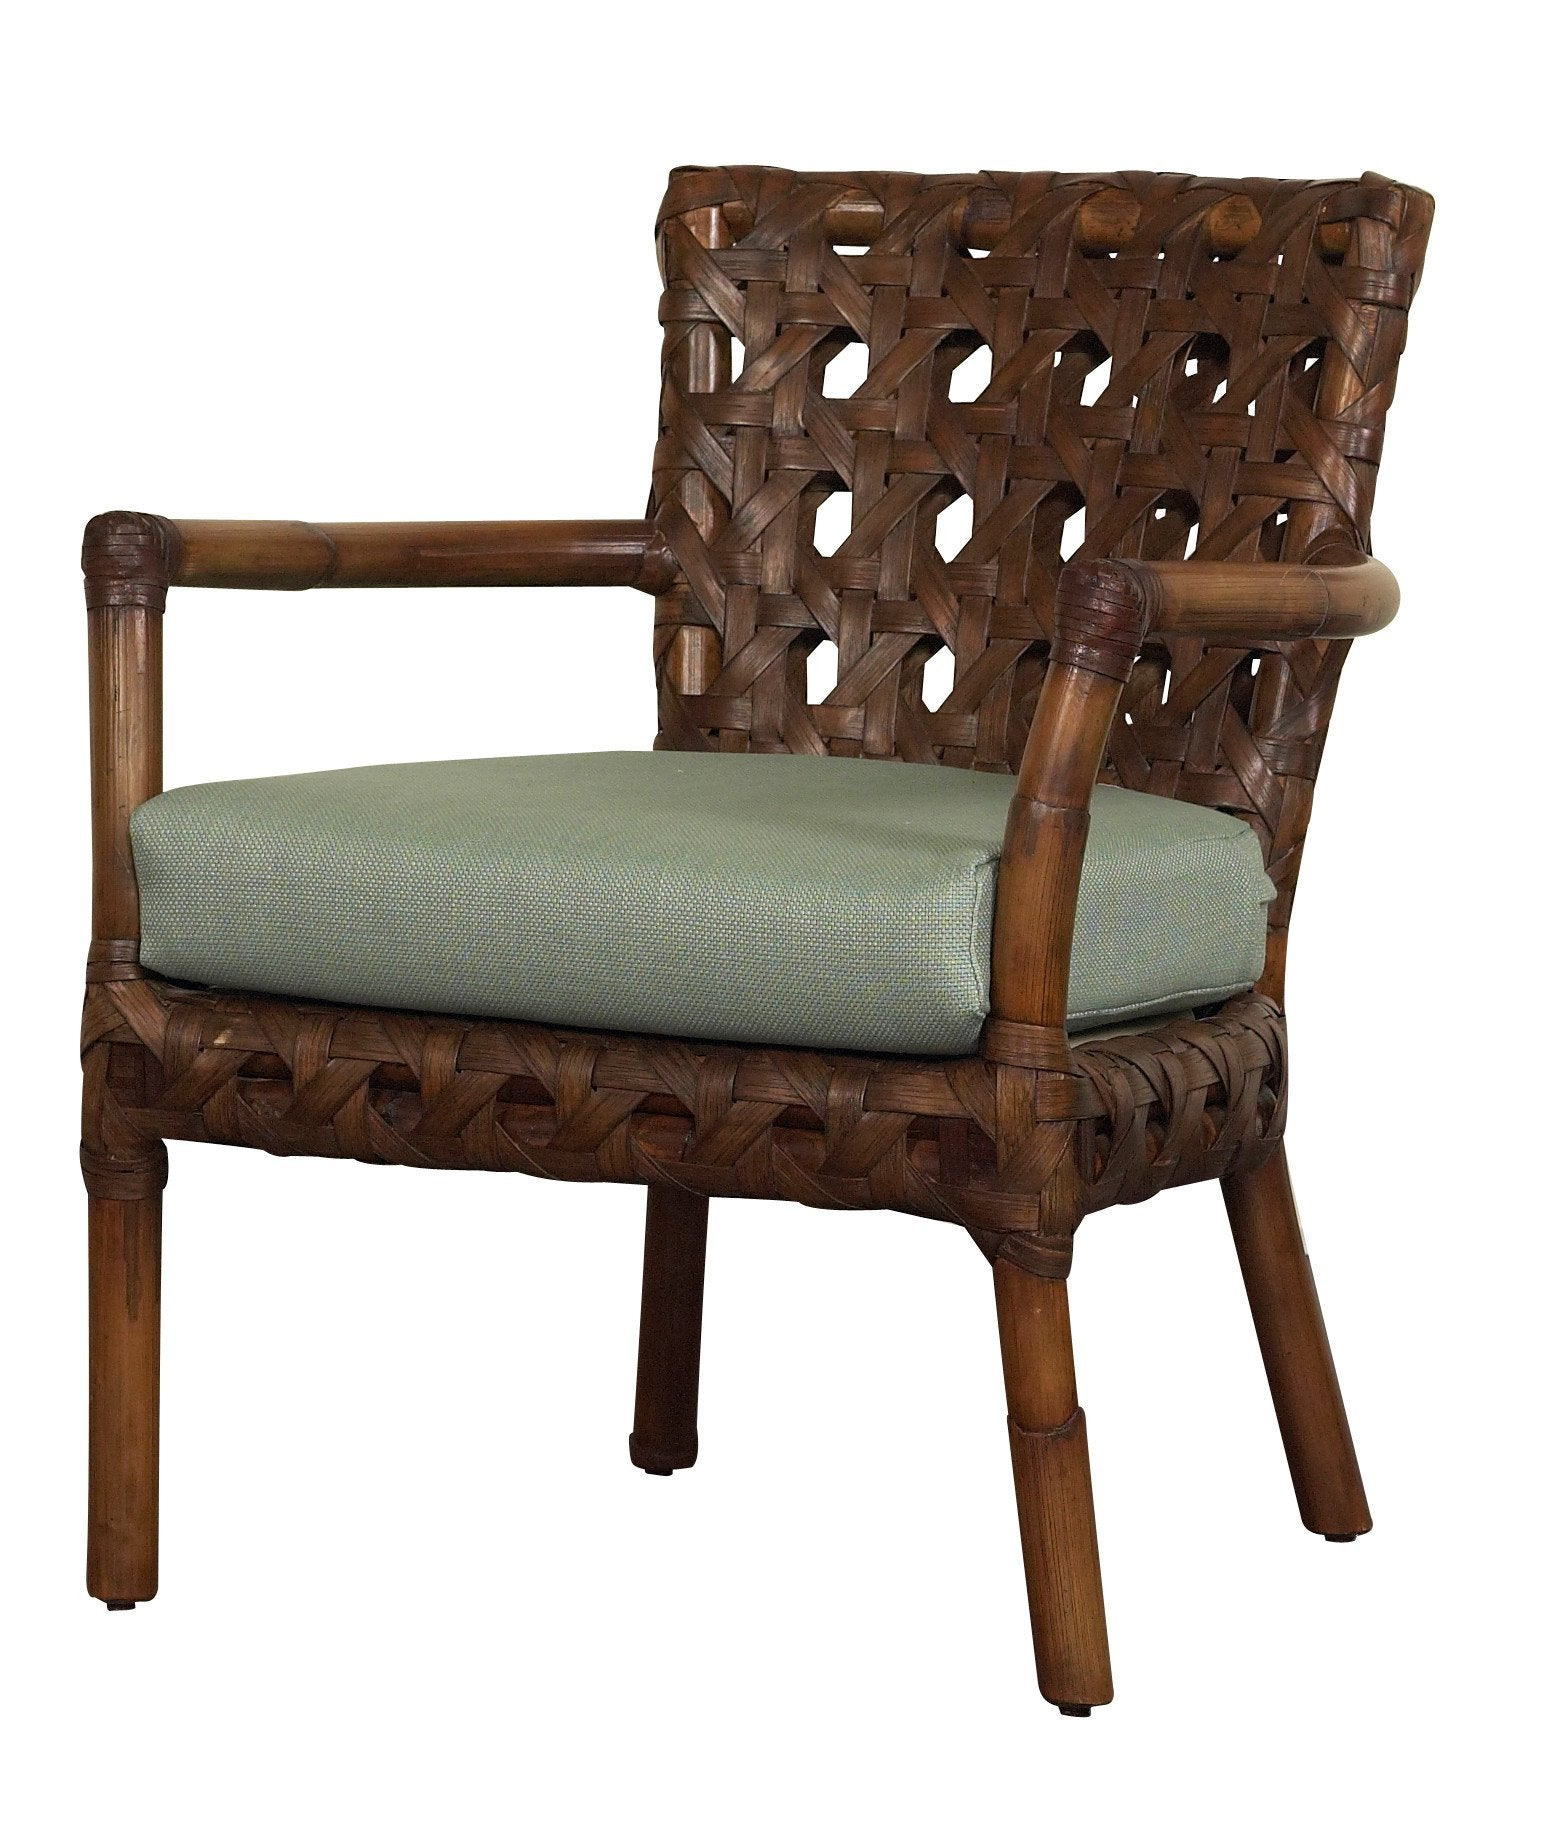 Designer Wicker & Rattan By Tribor Morocco Occasional Chair by Designer Wicker from Tribor Chair - Rattan Imports